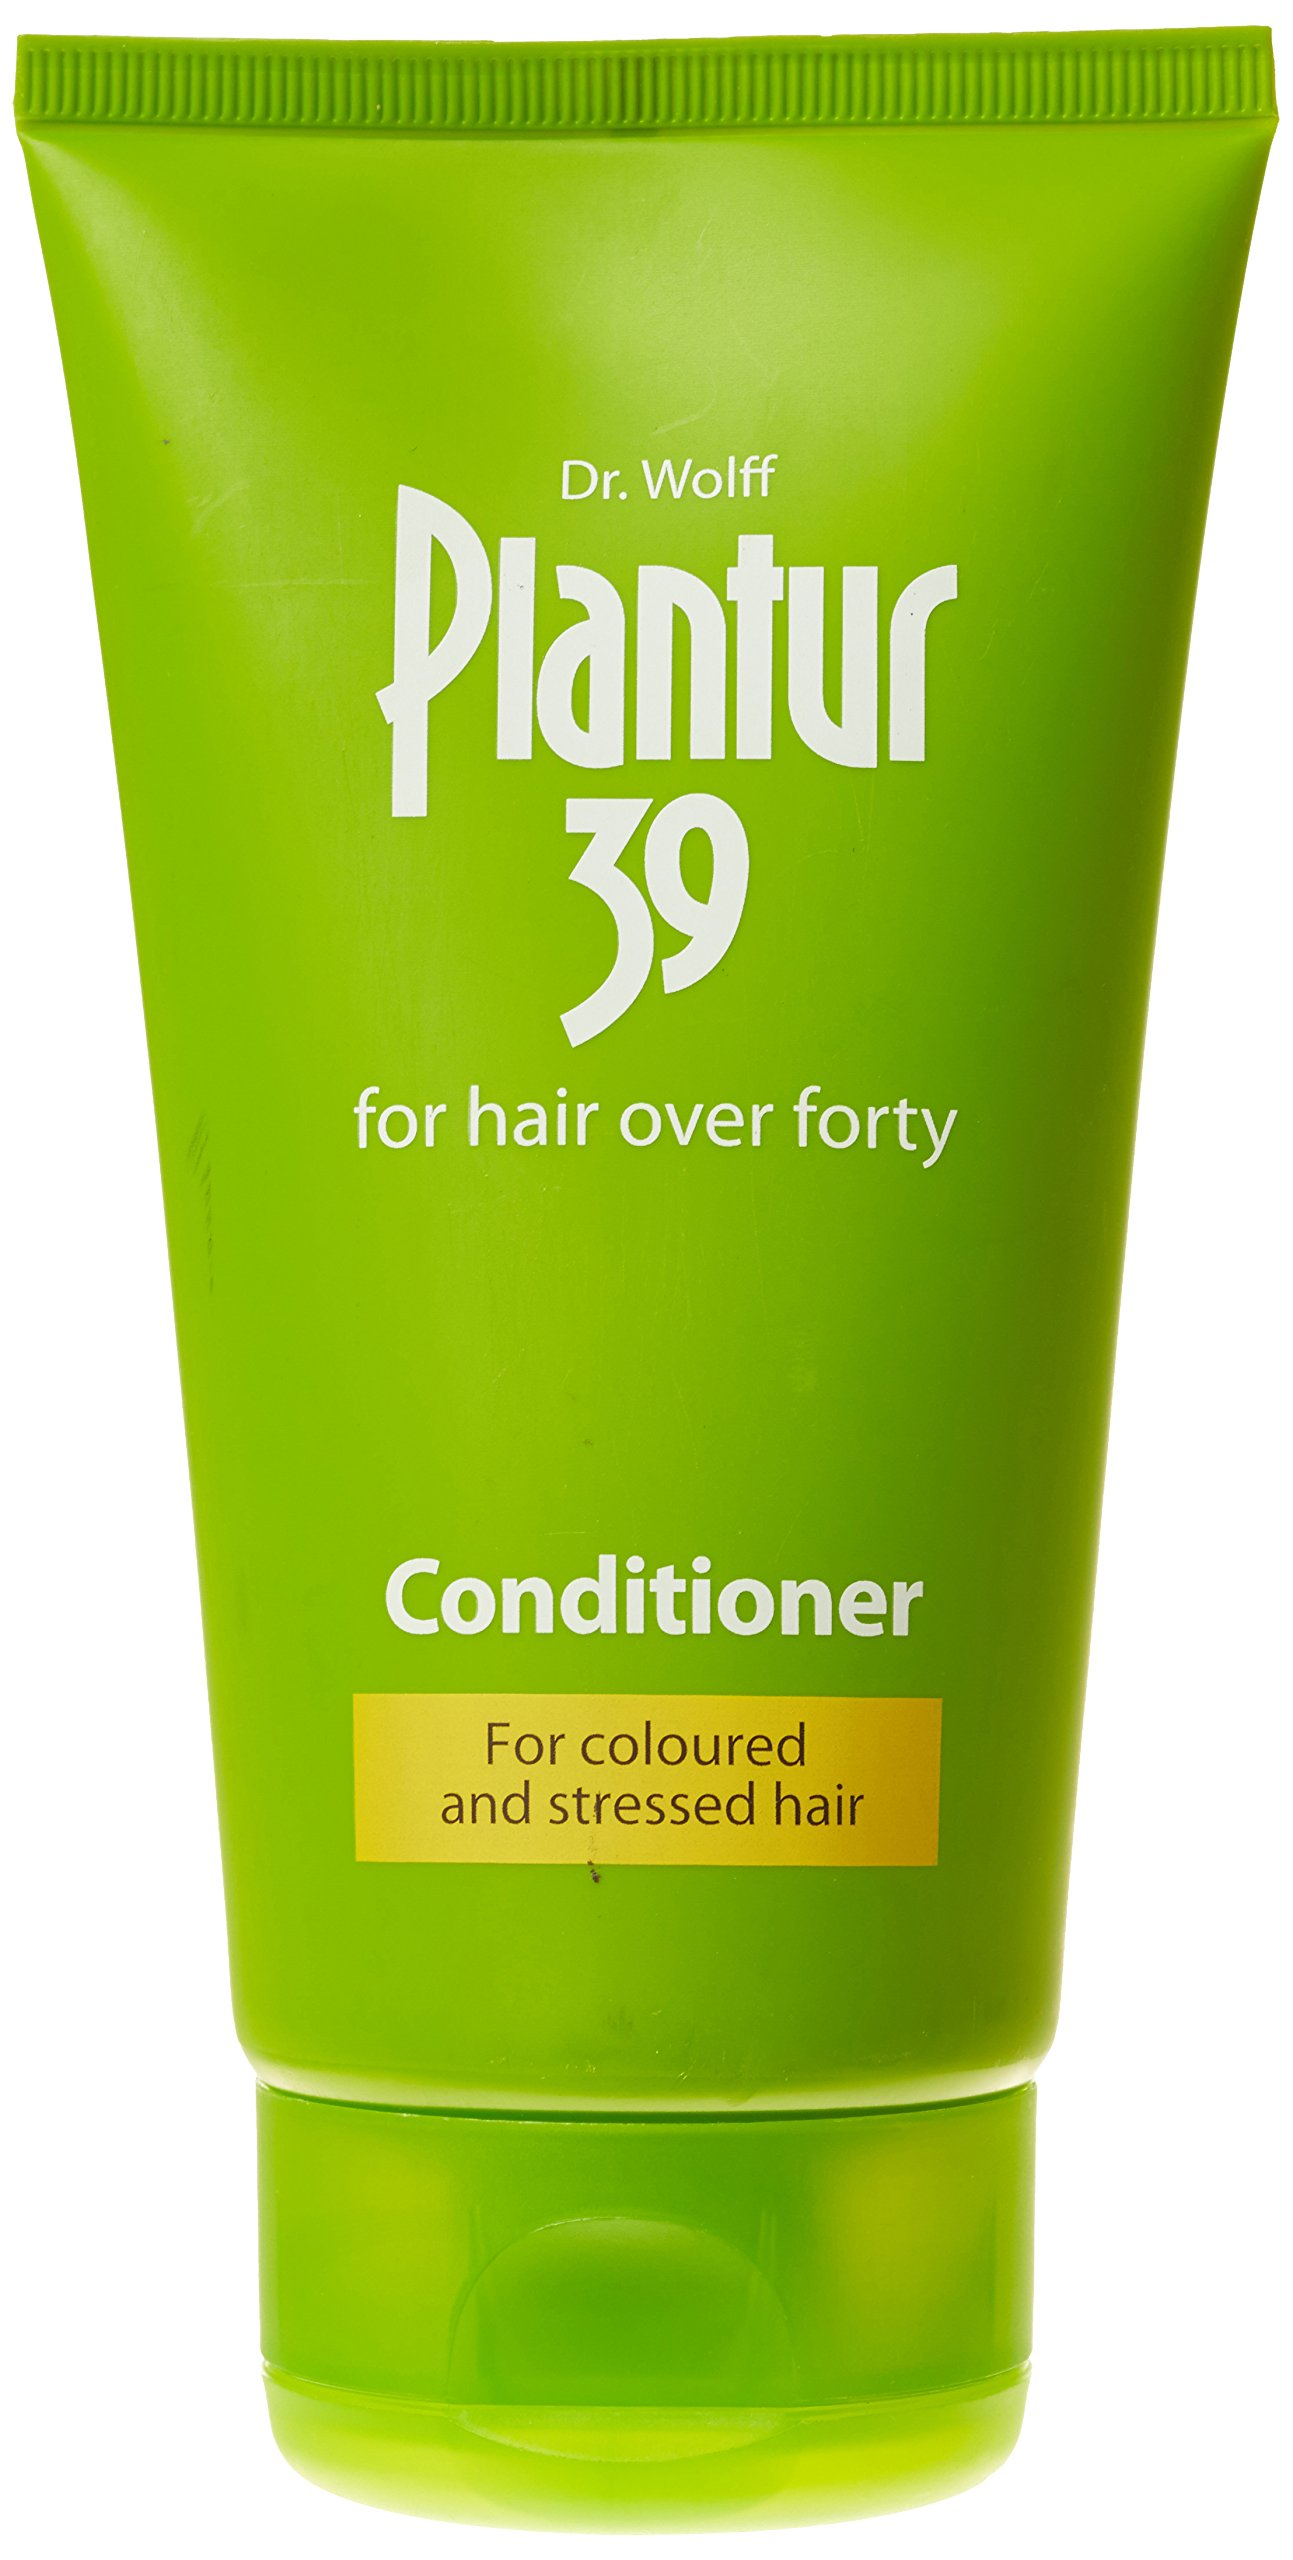 Plantur 39 150ml Conditioner for Coloured and Stressed Hair